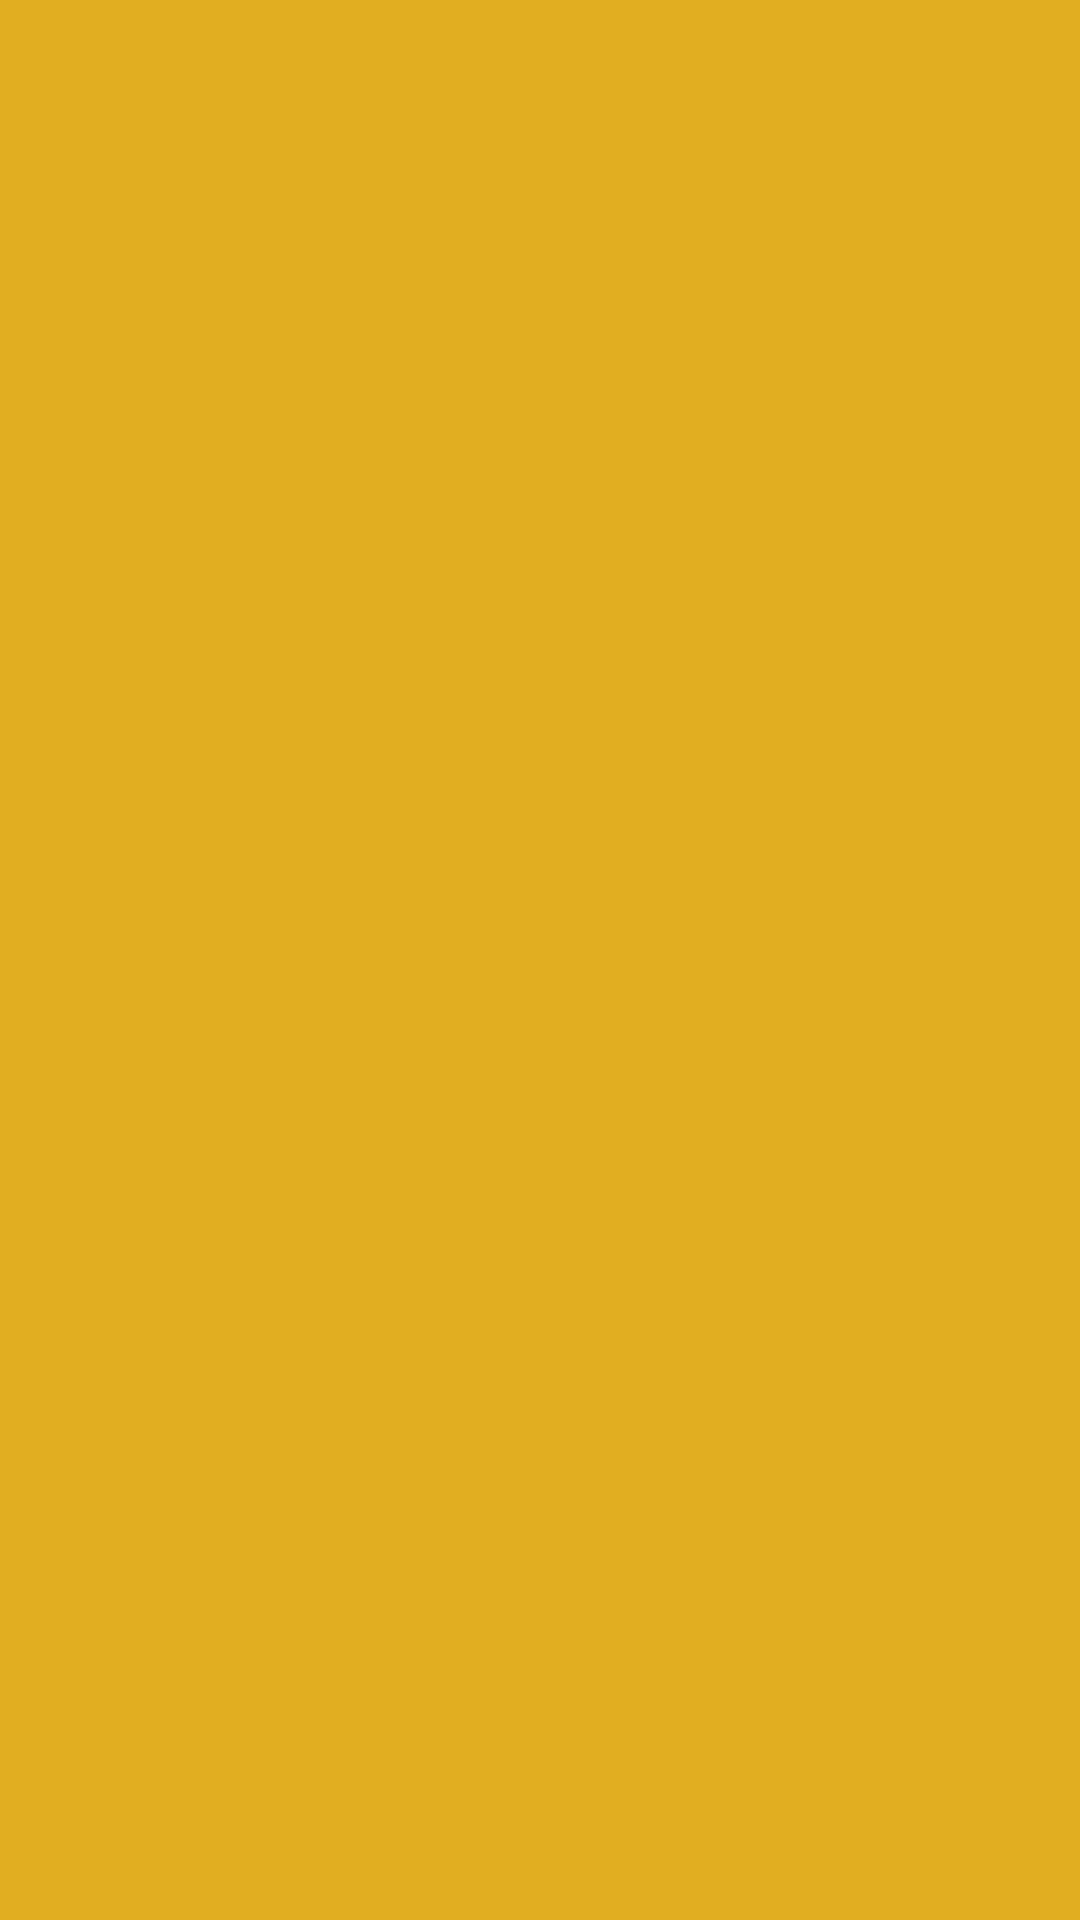 1080x1920 Urobilin Solid Color Background